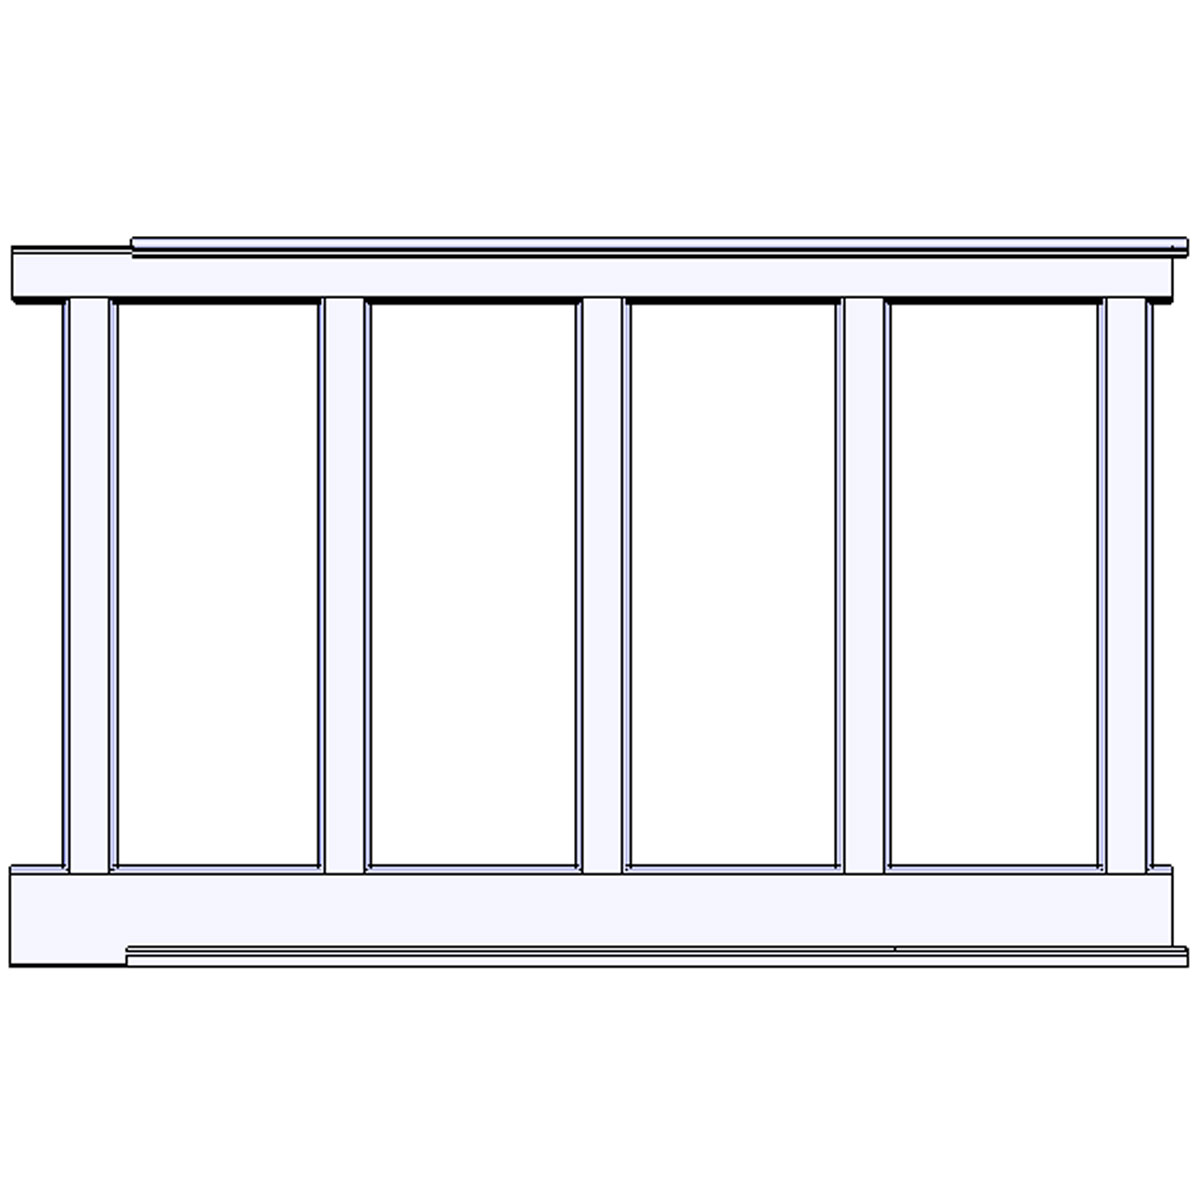 Wainscot Paneling Kit: Elite Trimworks Corp. RCW-60 Recessed, Wall Paneled Wainscot